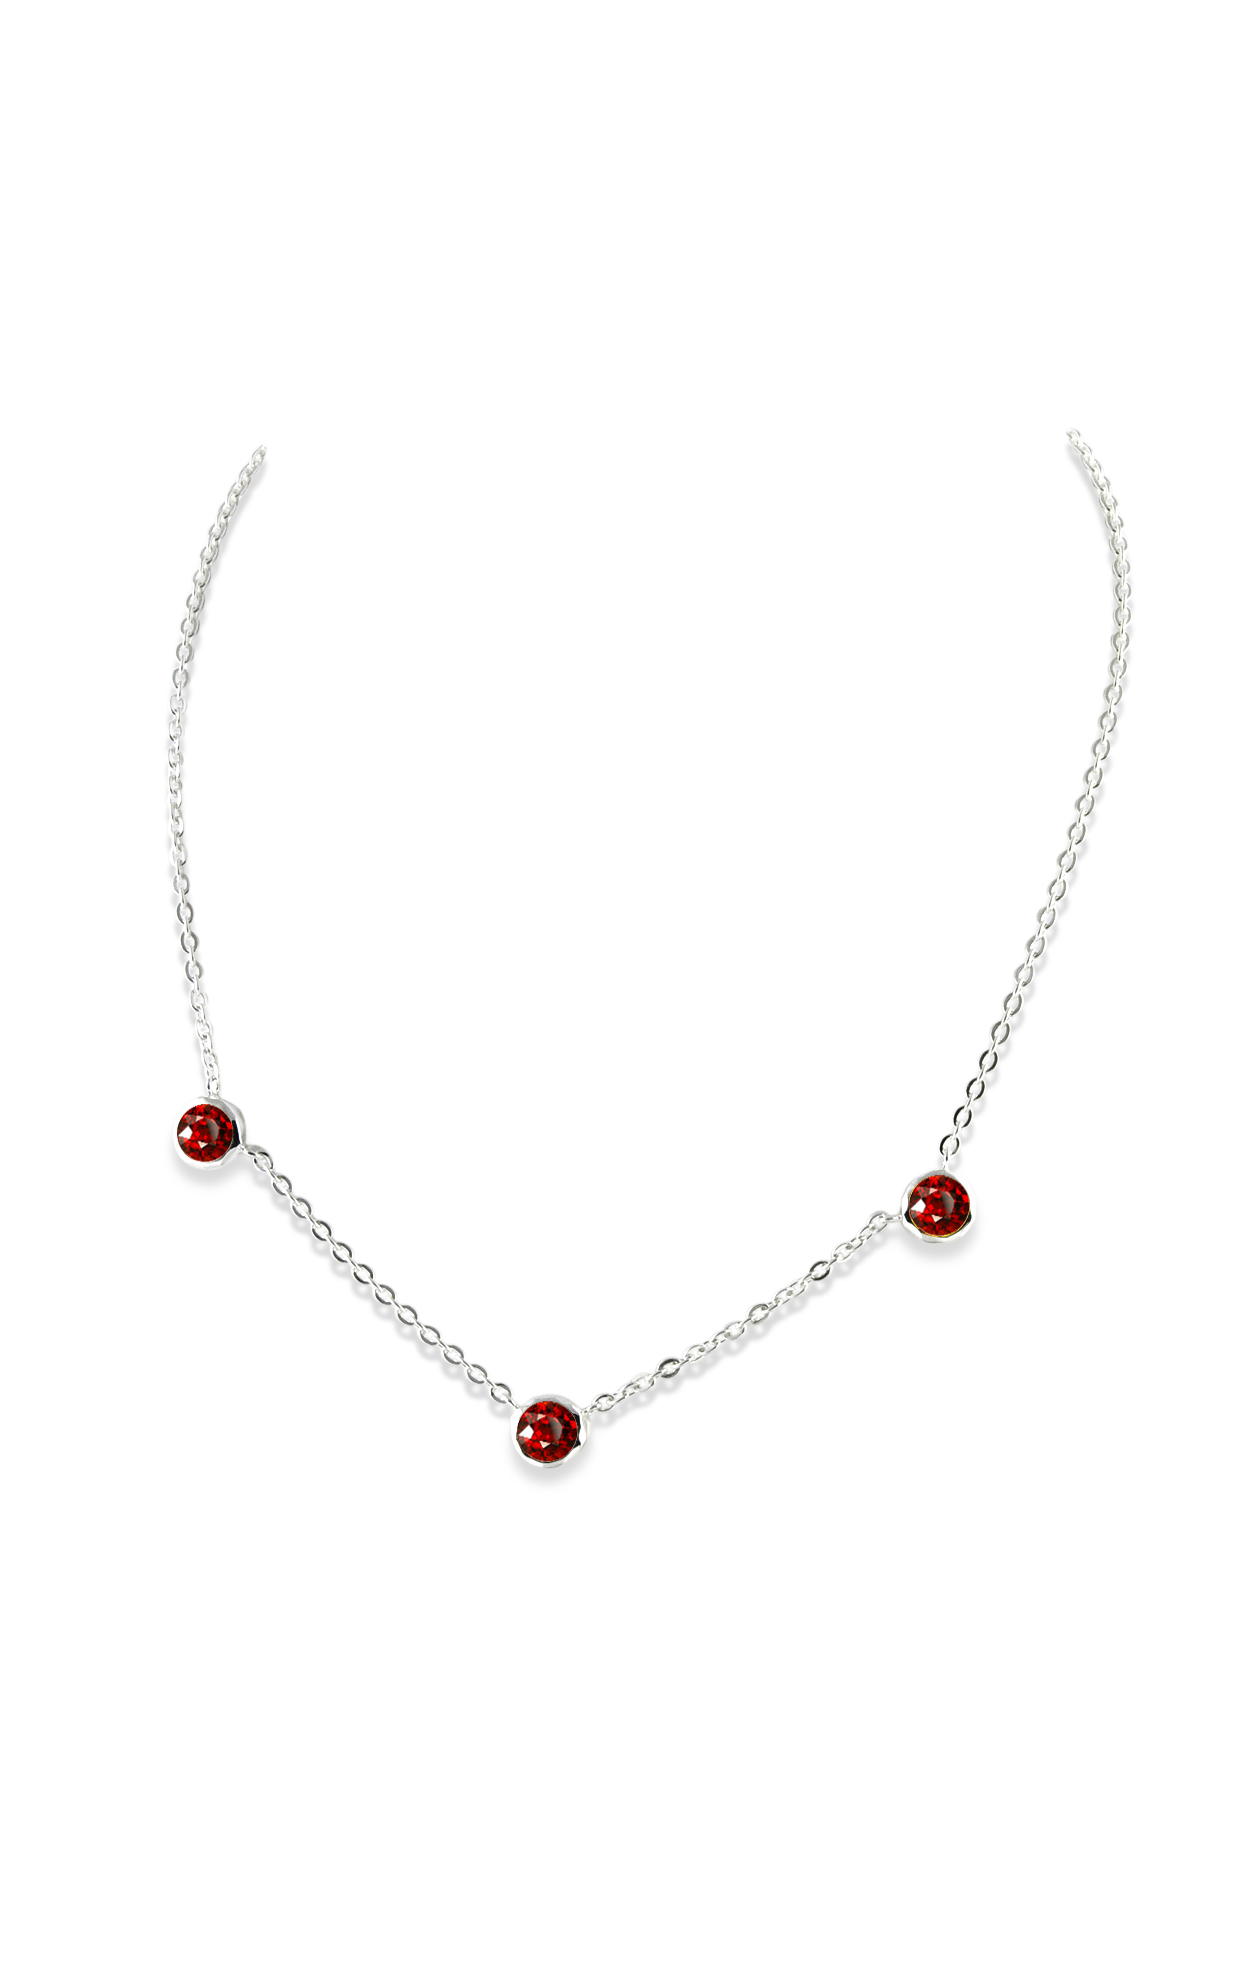 Zina Contemporary Necklace A1633-17-GT product image